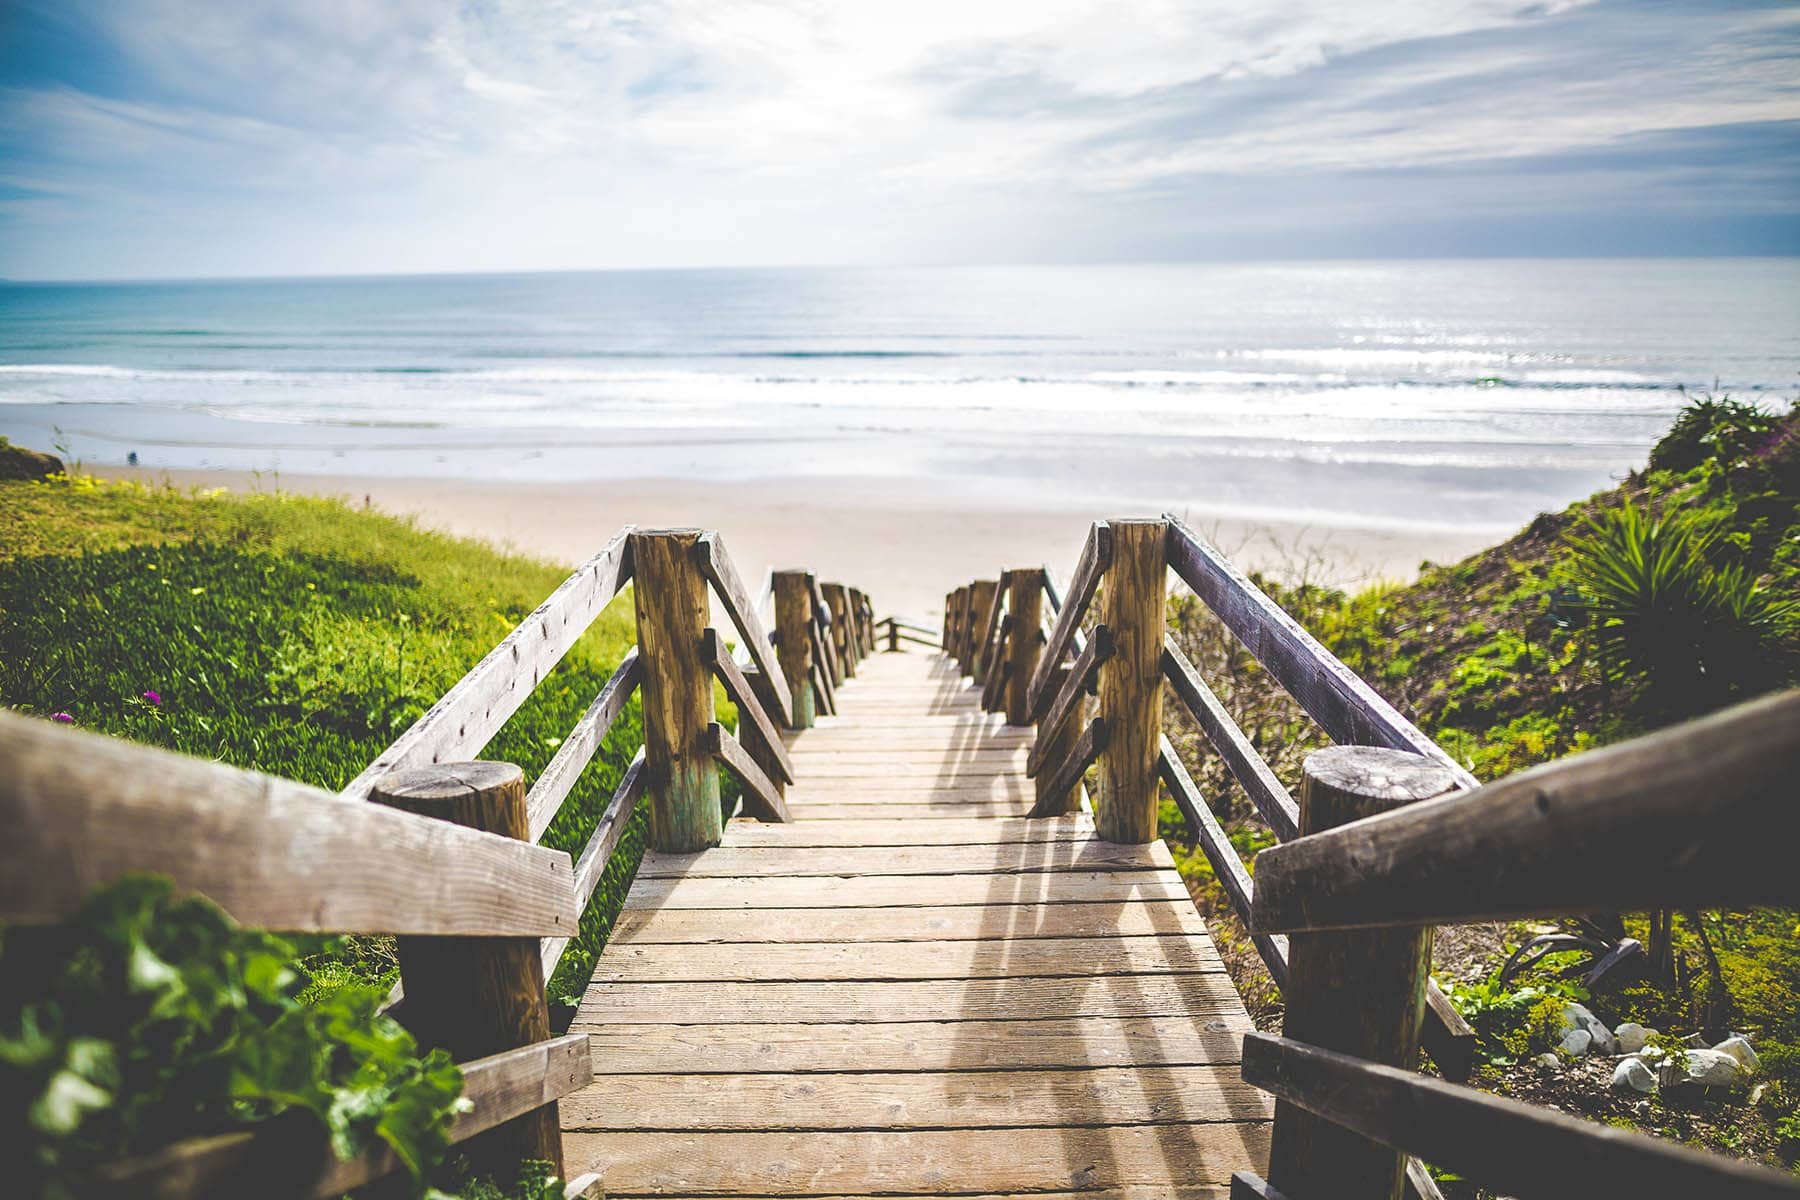 Wooden steps down to the beach